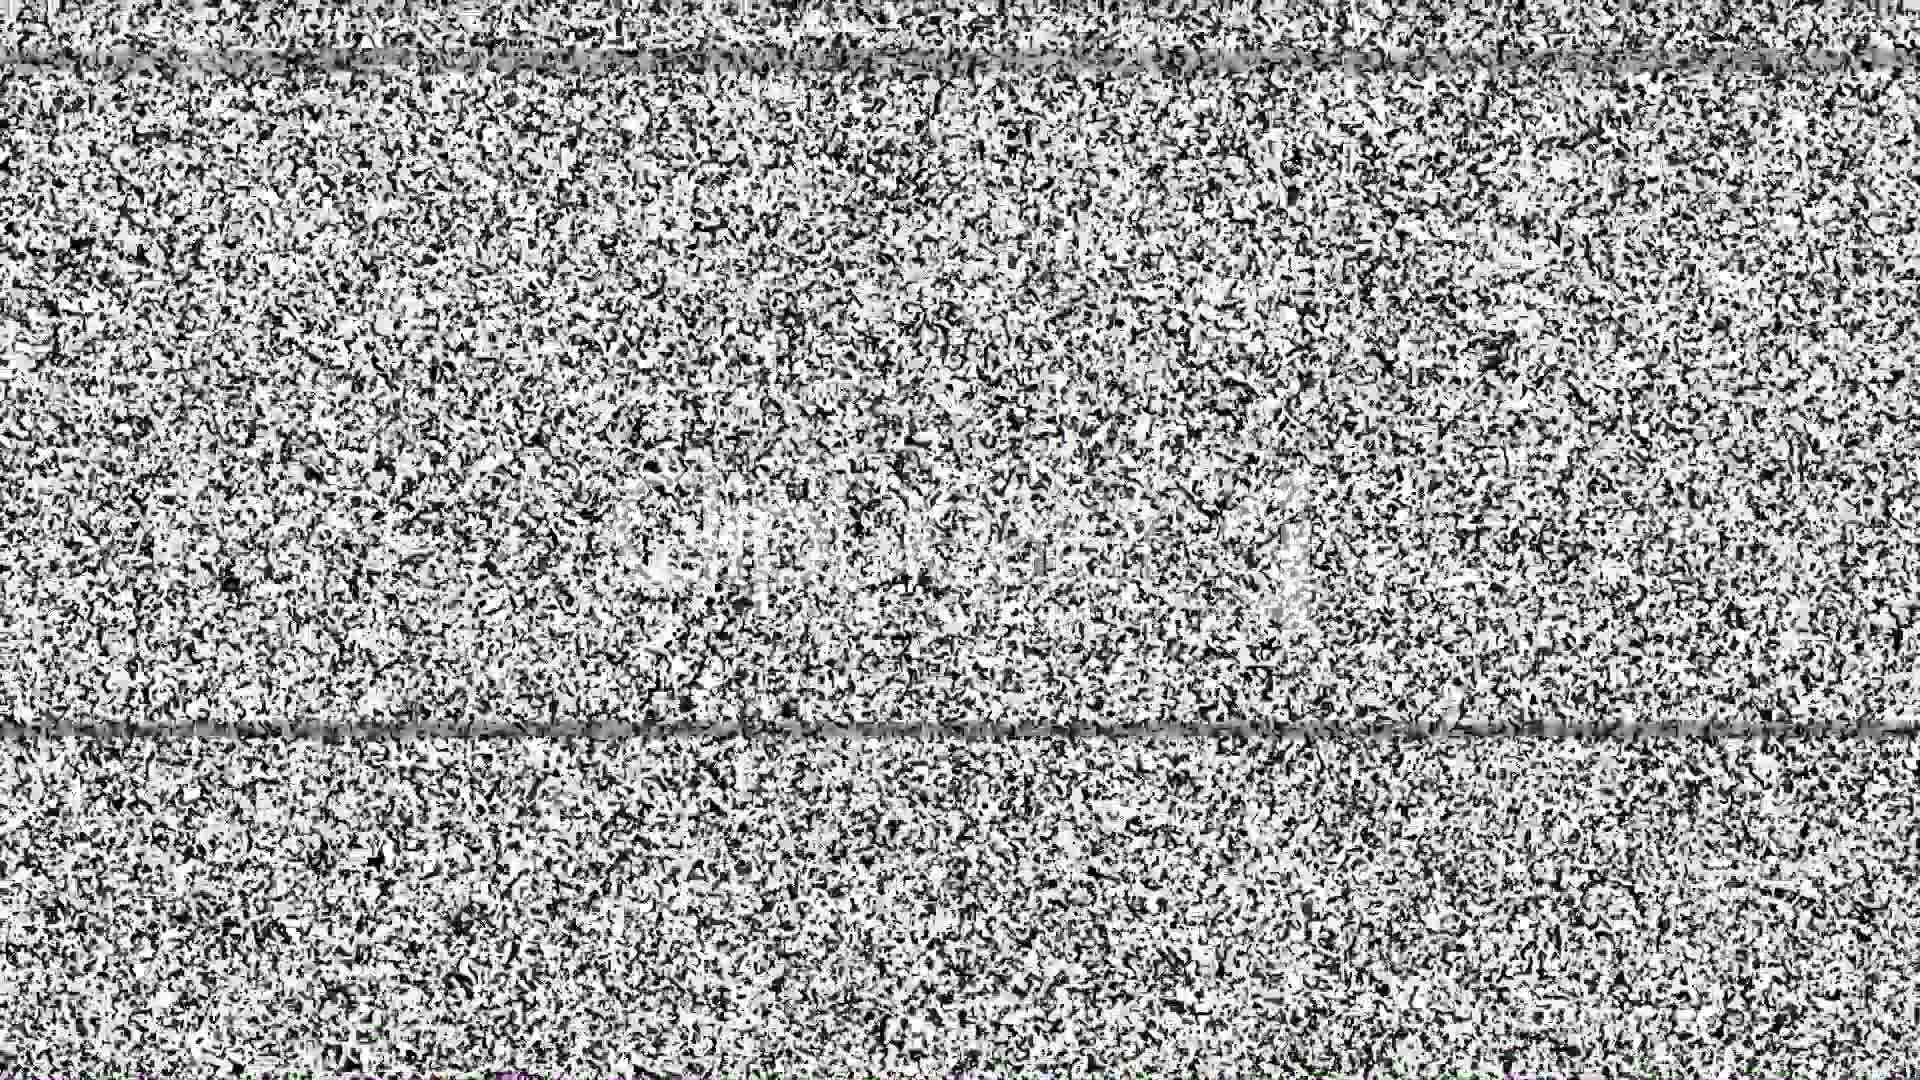 Static TV Noise 1080p with Sound: Royalty-free video and